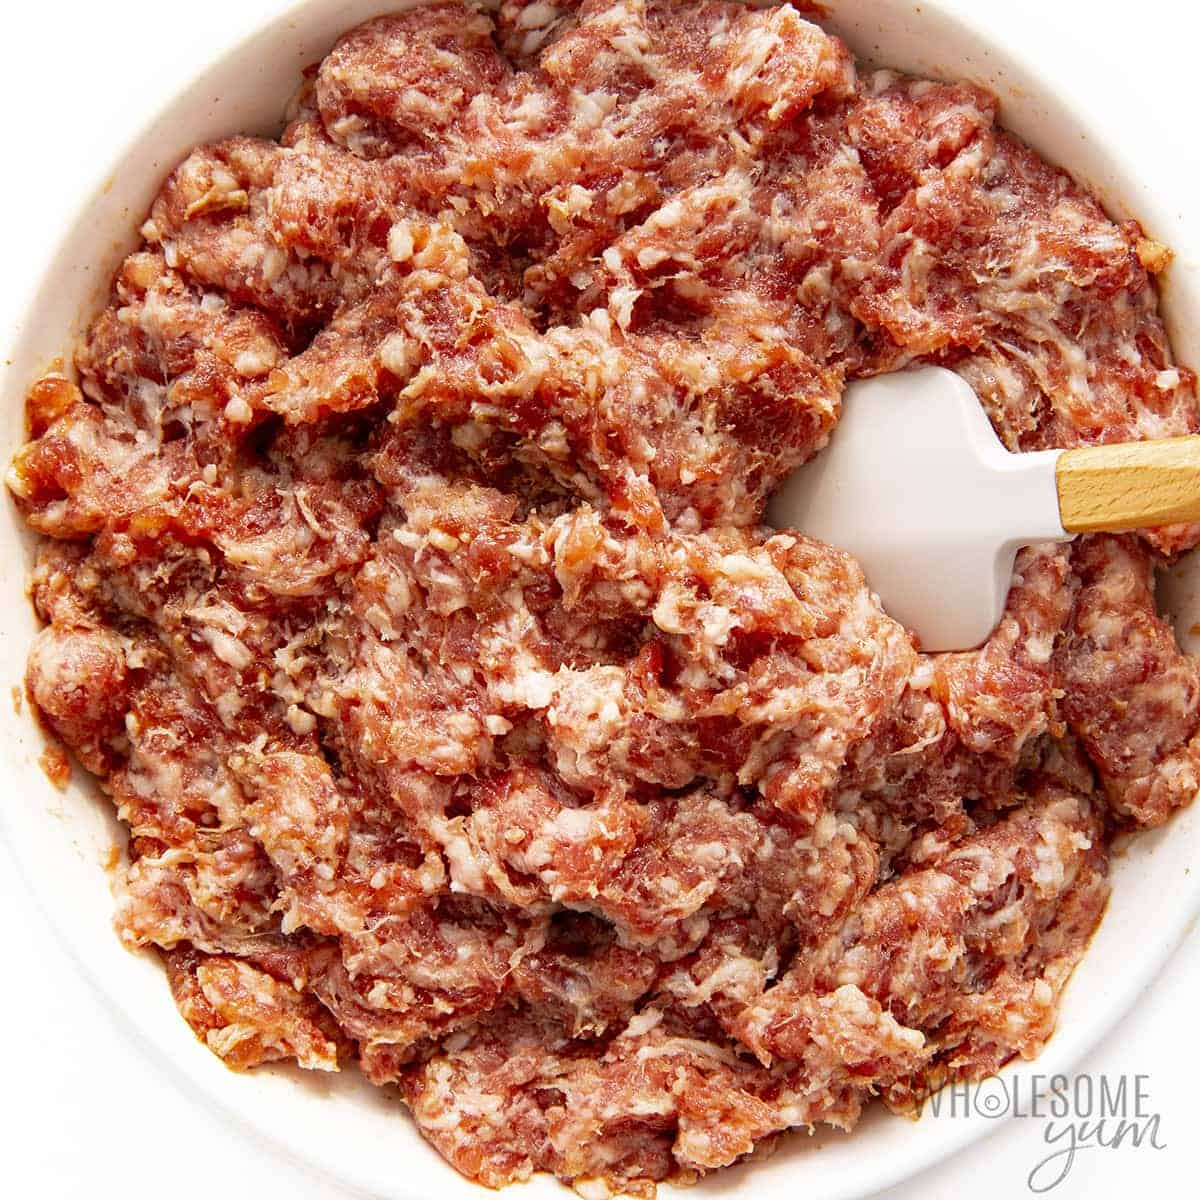 Breakfast sausage in glass bowl